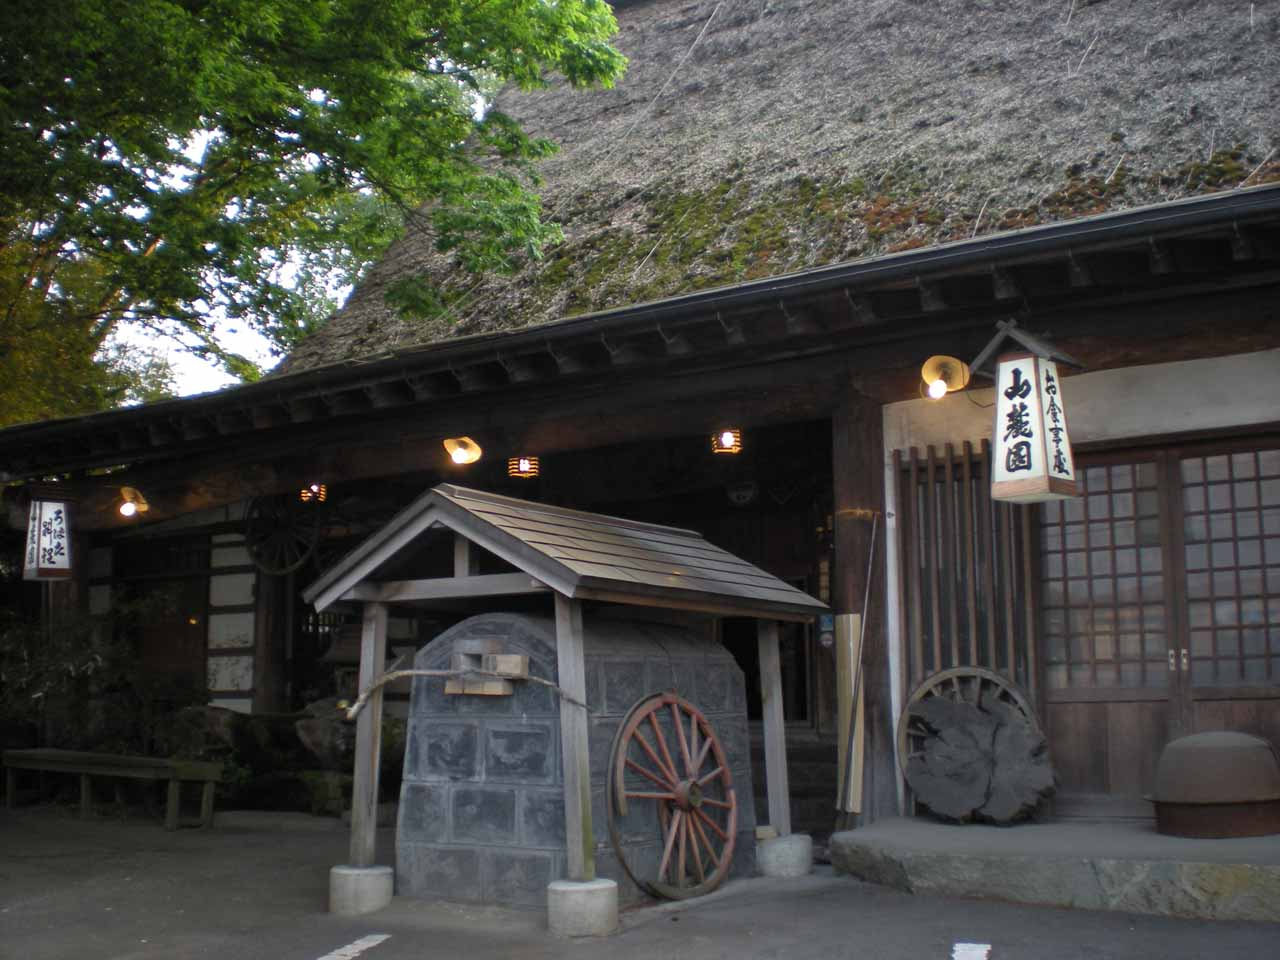 The exterior of the Sanrokuen Restaurant